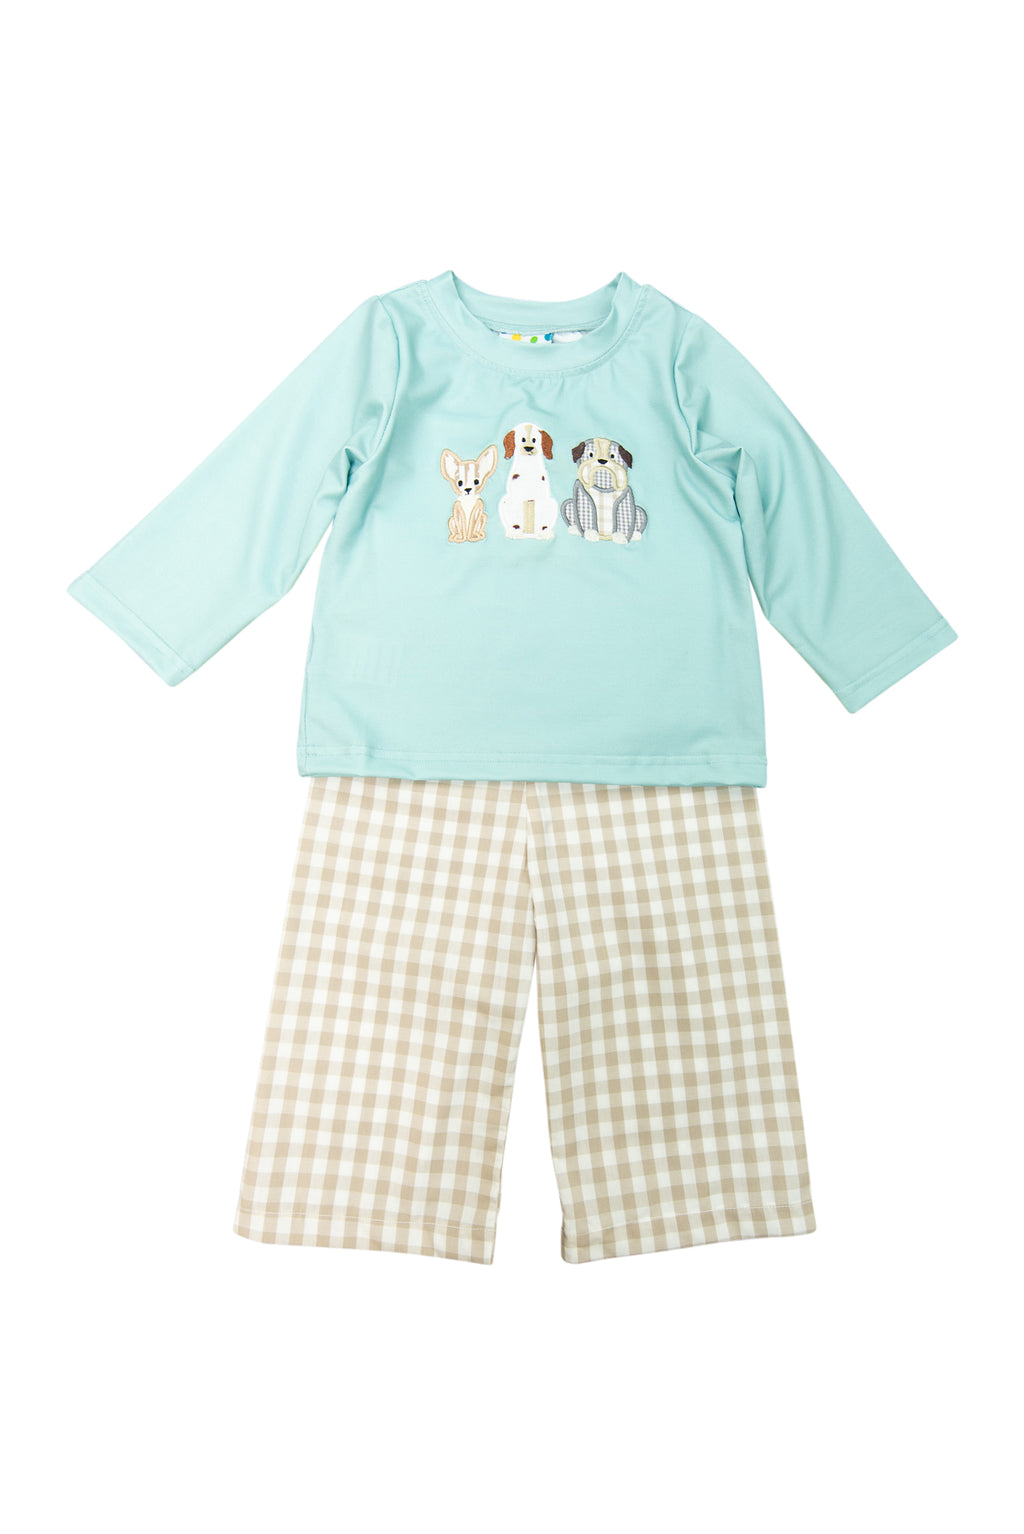 Boys Doggy Pals Pants Set